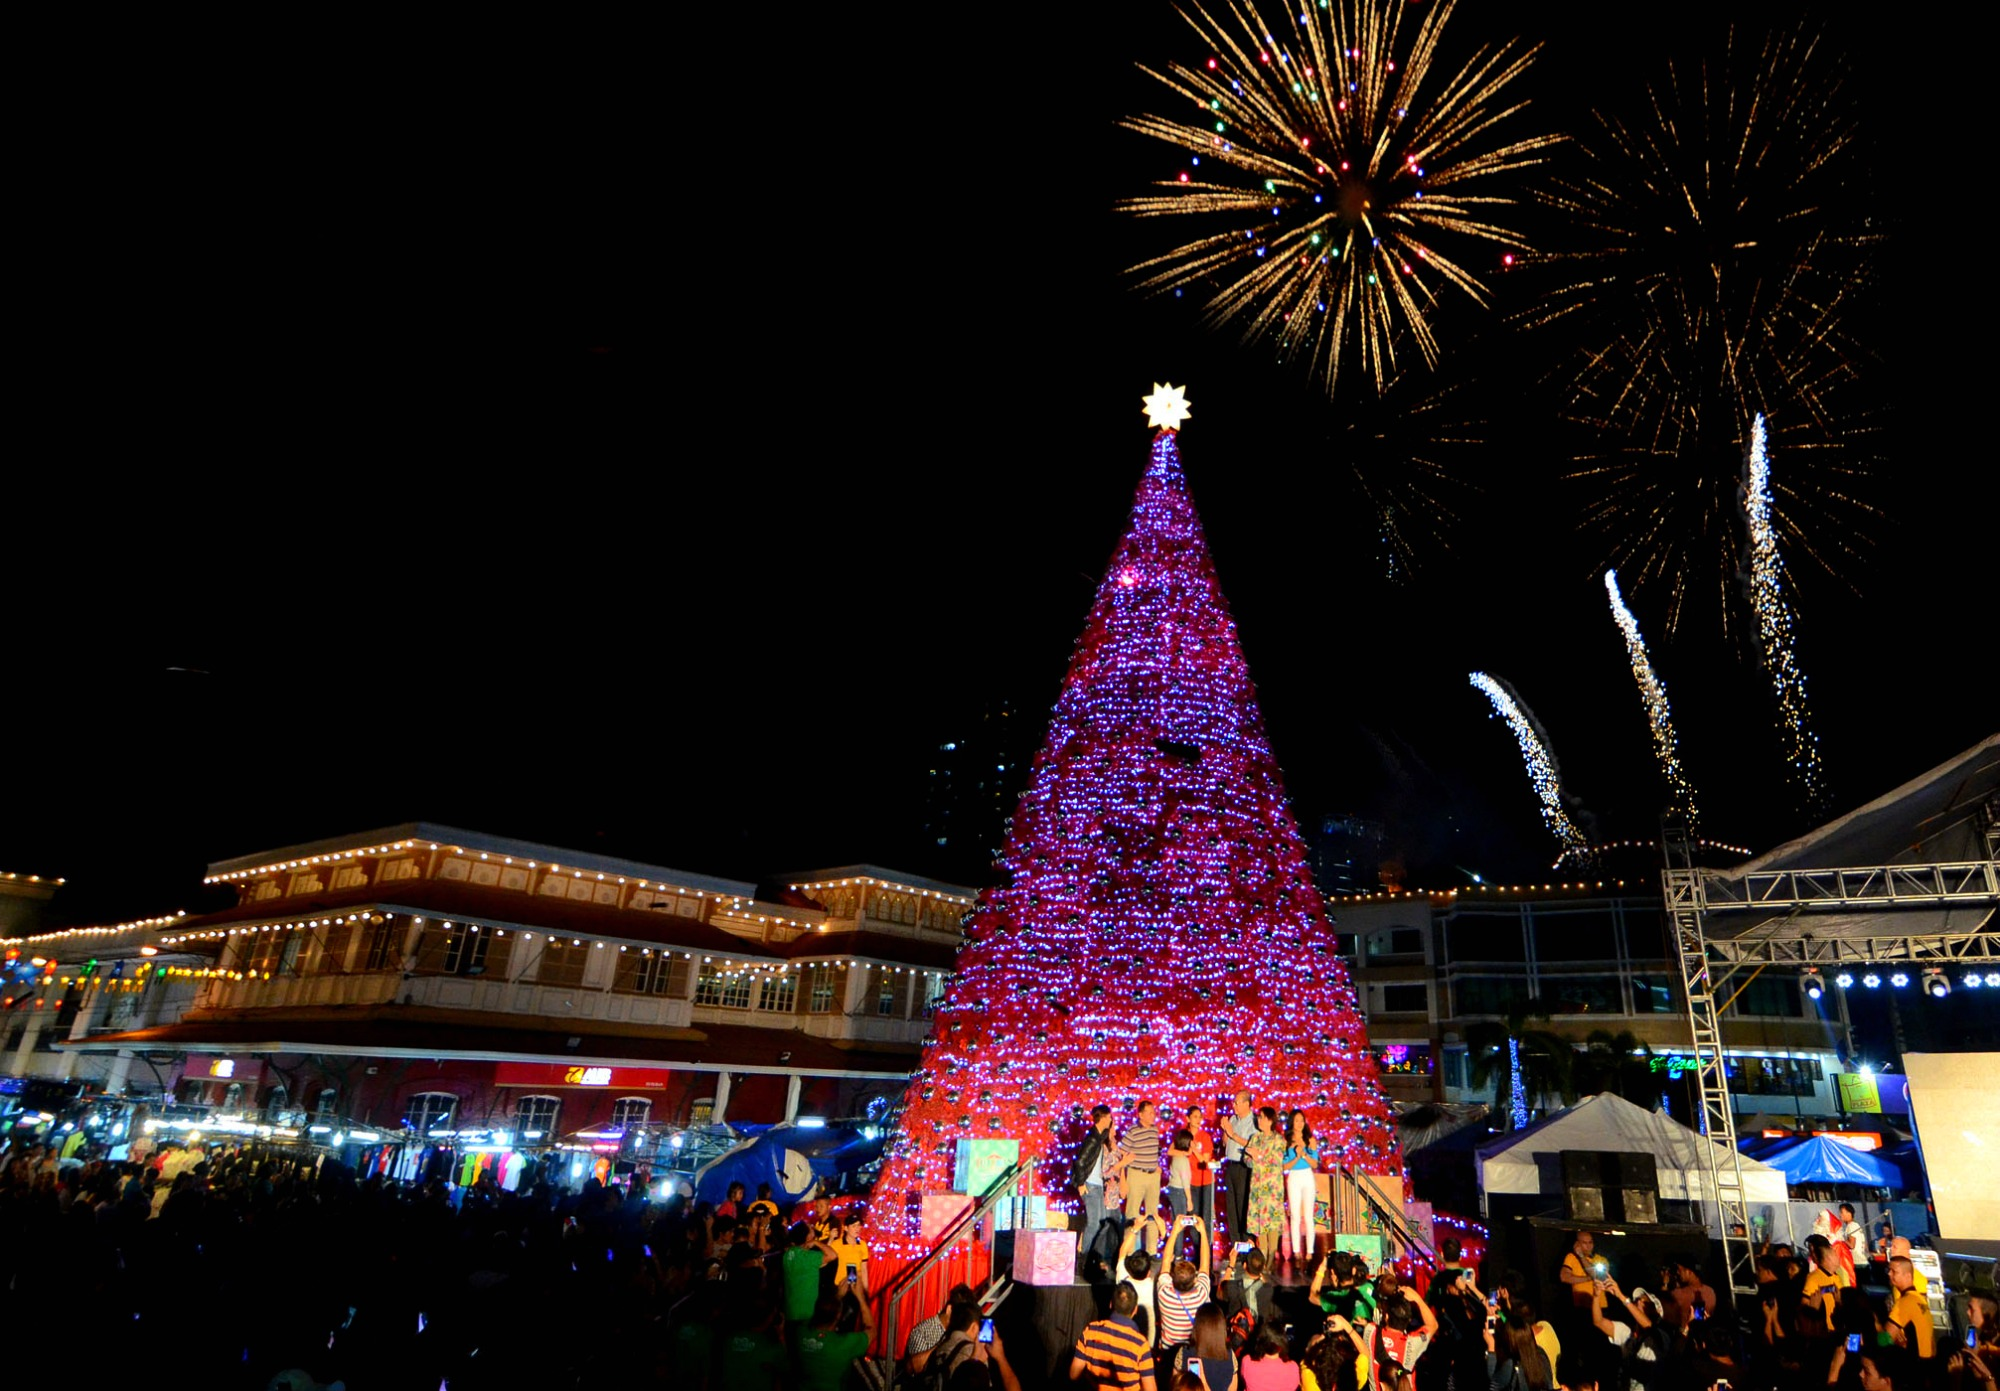 Simple Christmas Tree Decorations Philippines.Visit These 7 Beautiful Christmas 2015 Exhibits At Ph Malls